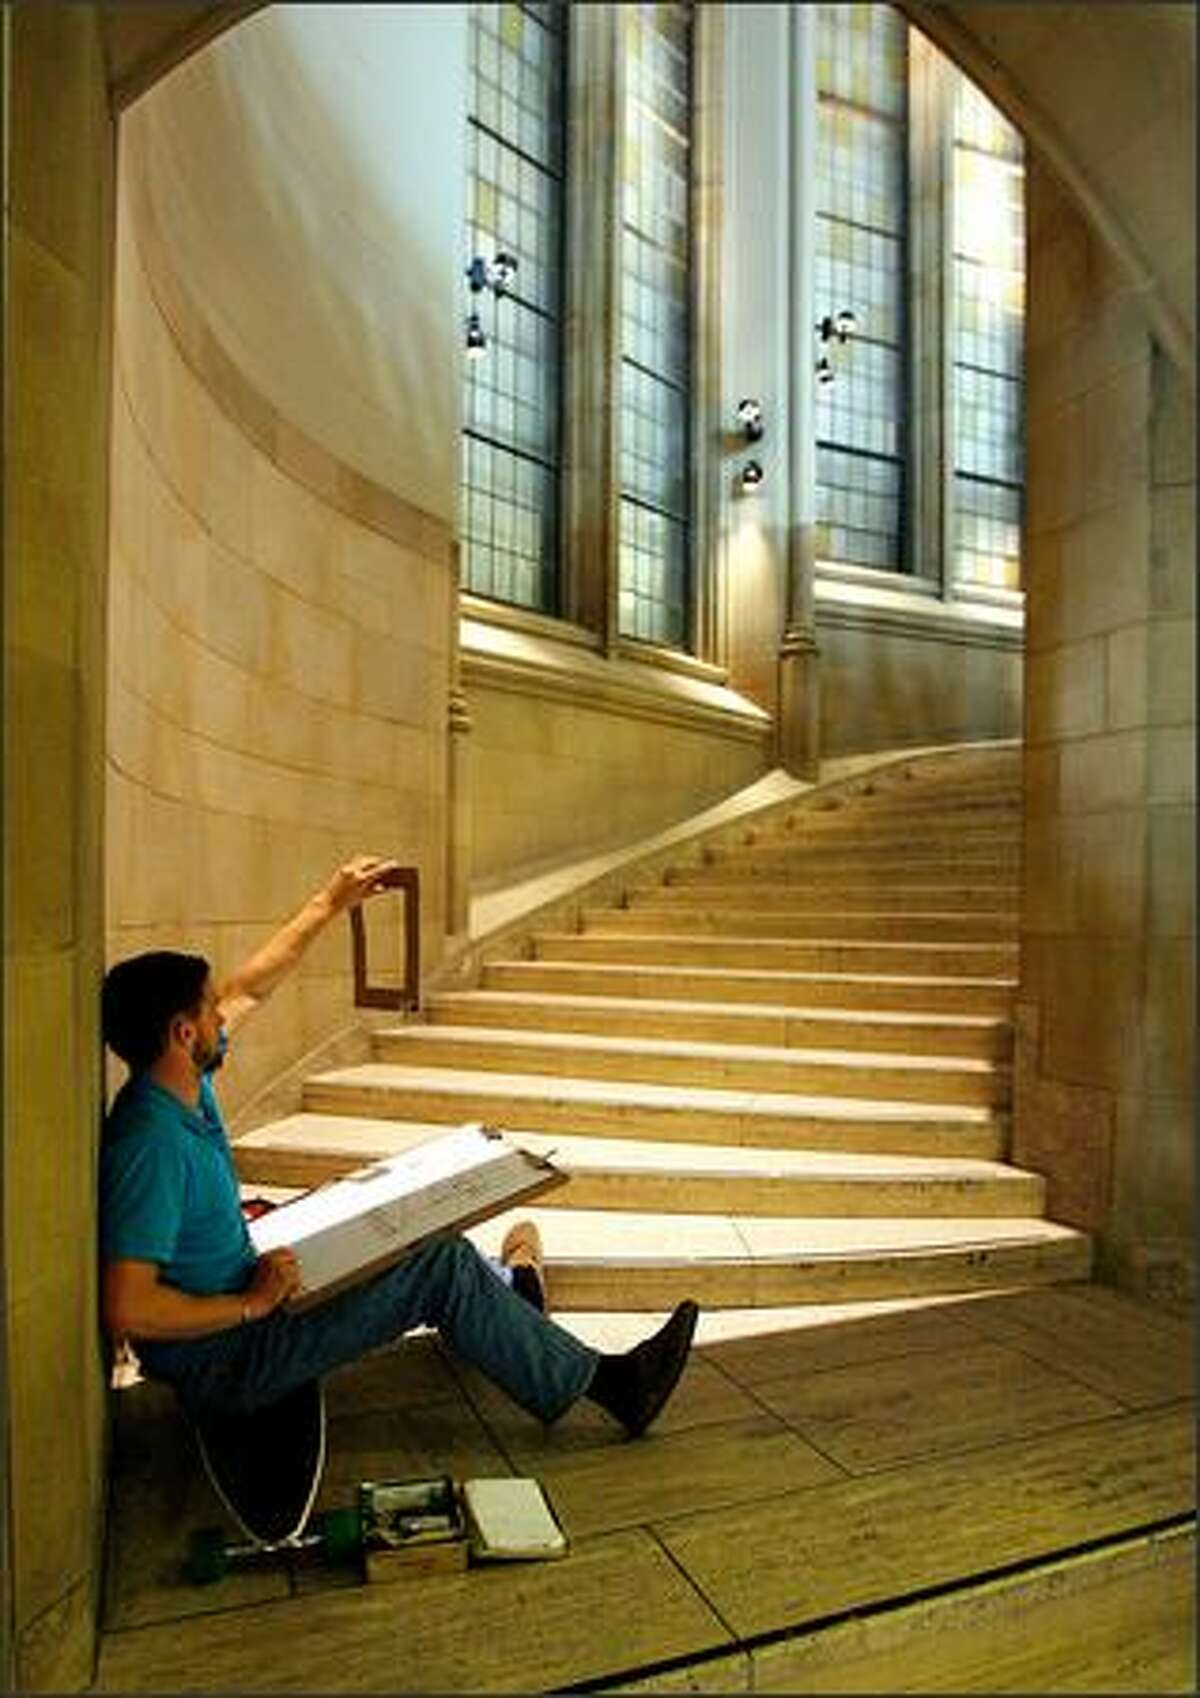 University of Washington student Max Lang holds up a cardboard viewfinder as he sketches the steps and columns of the grand staircase inside the Seattle campus's Suzzallo Library.